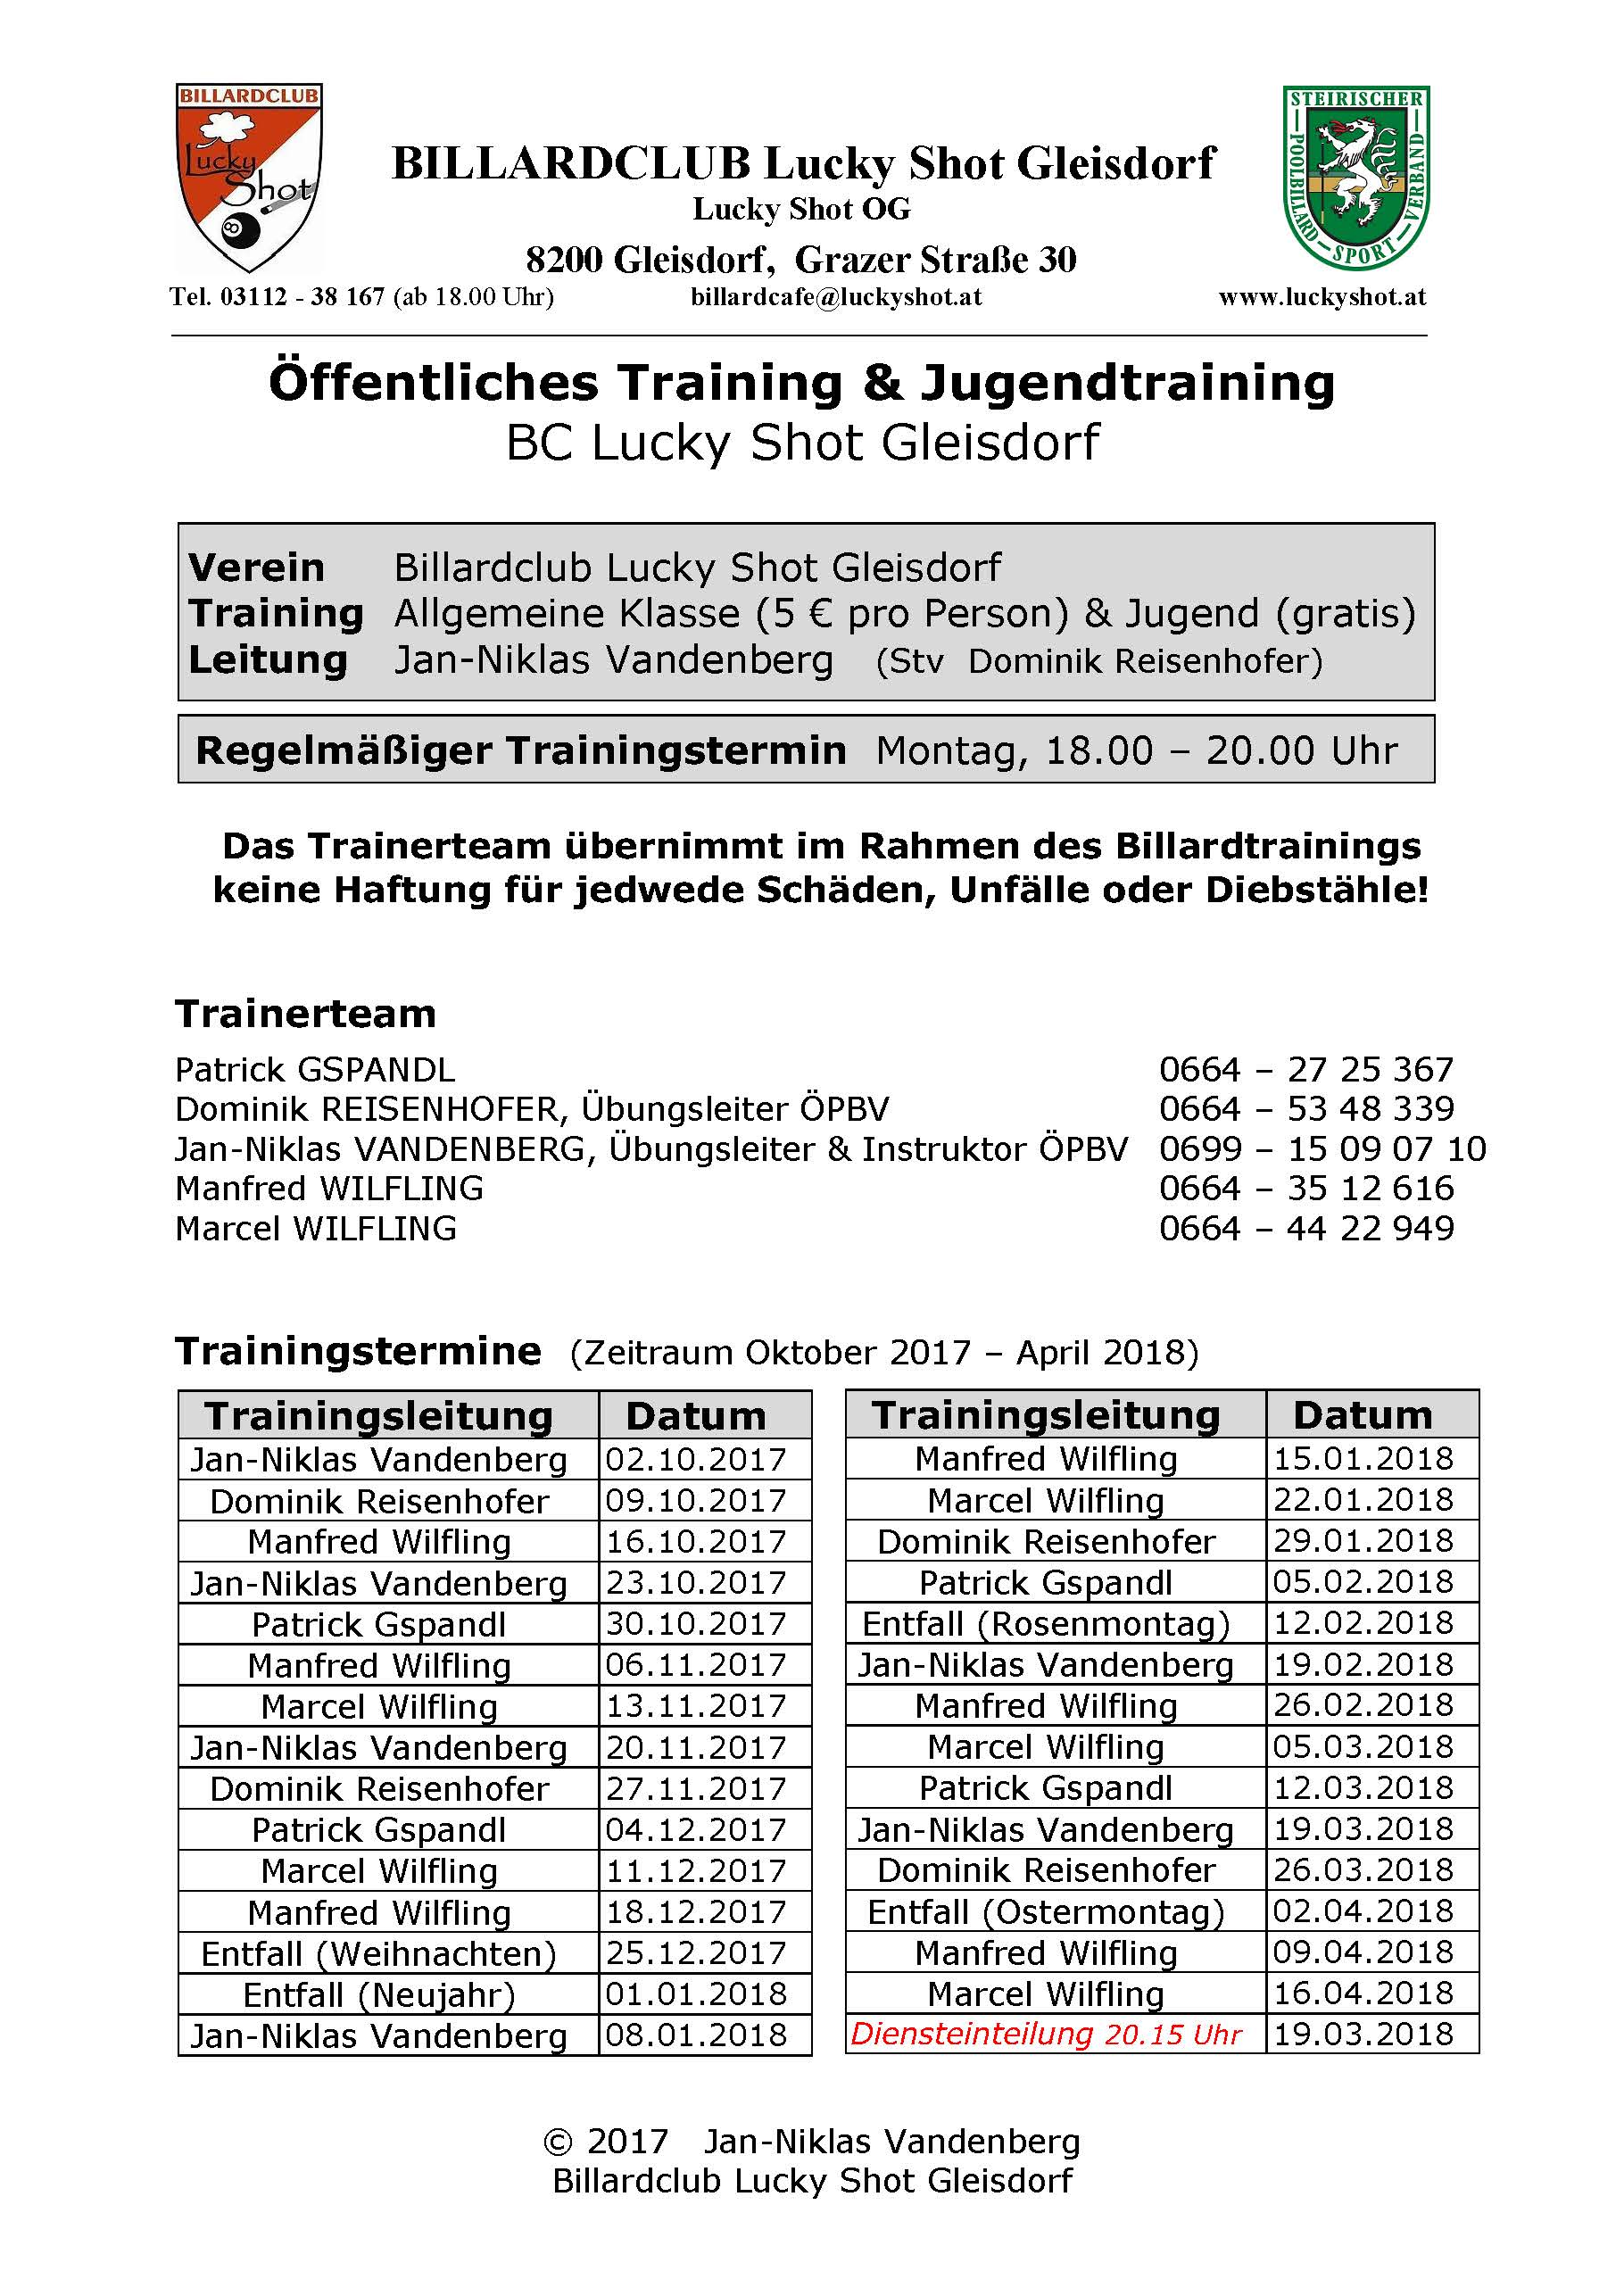 BC Lucky Shot Jugendtraining Dienstplan 6 September 2017